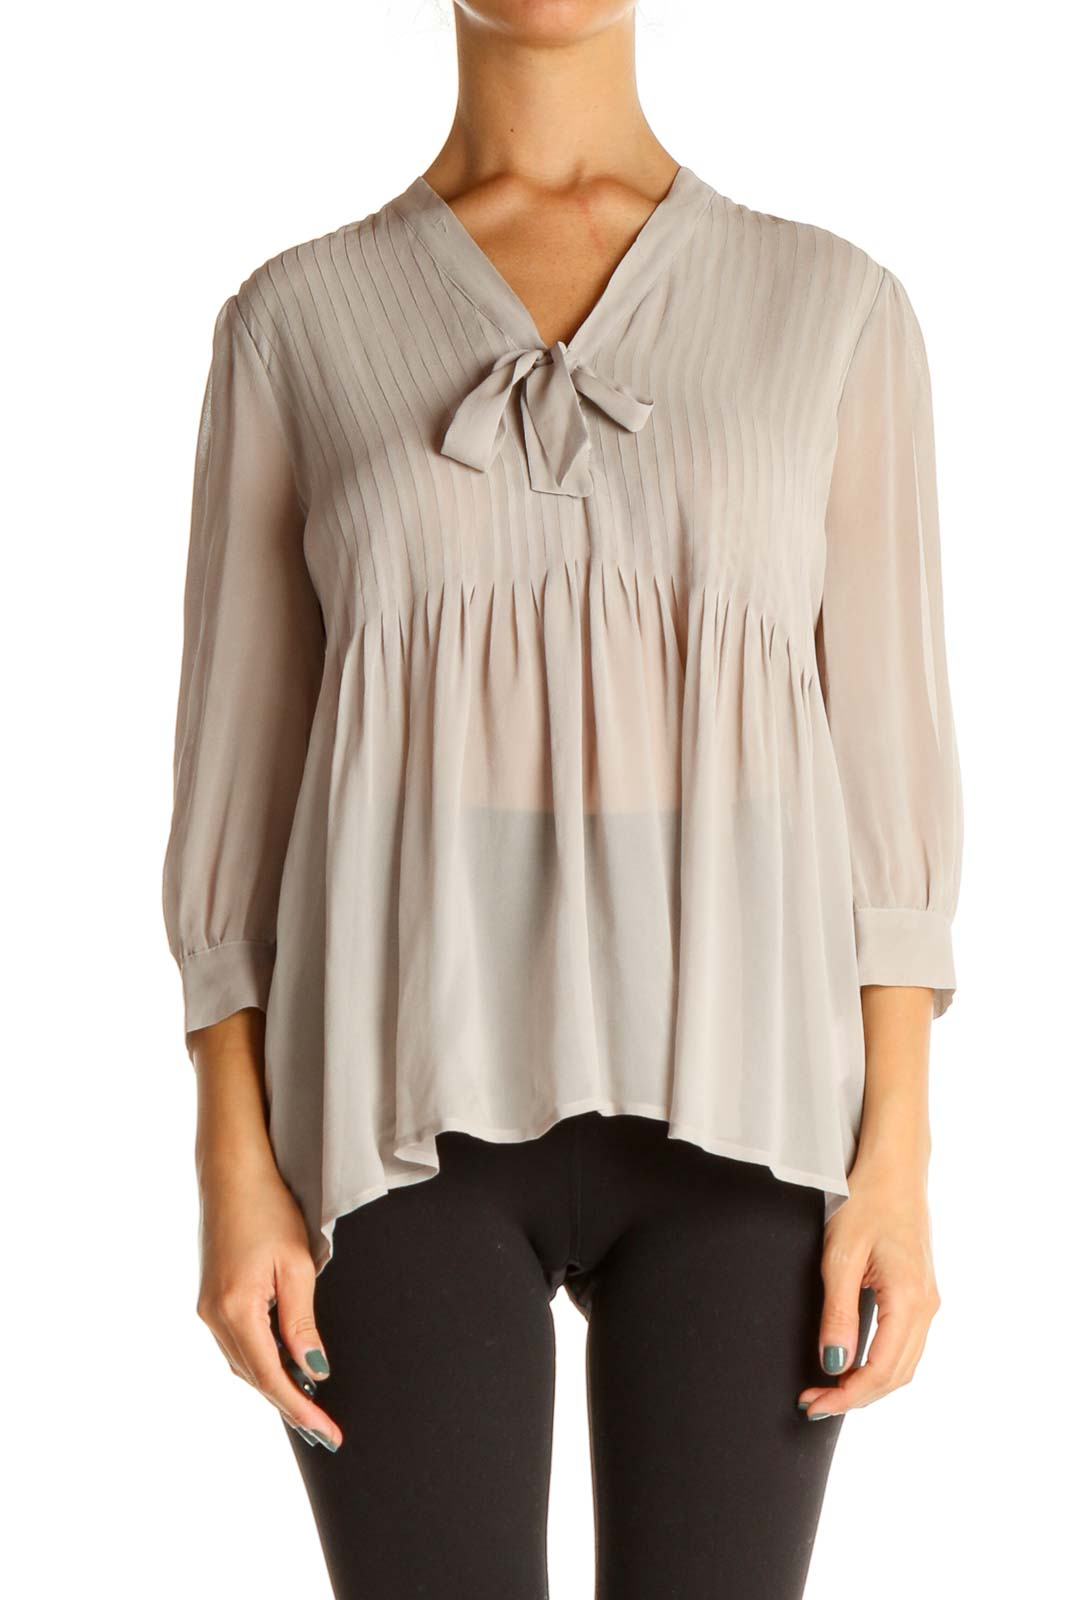 Gray Solid Brunch Blouse Front